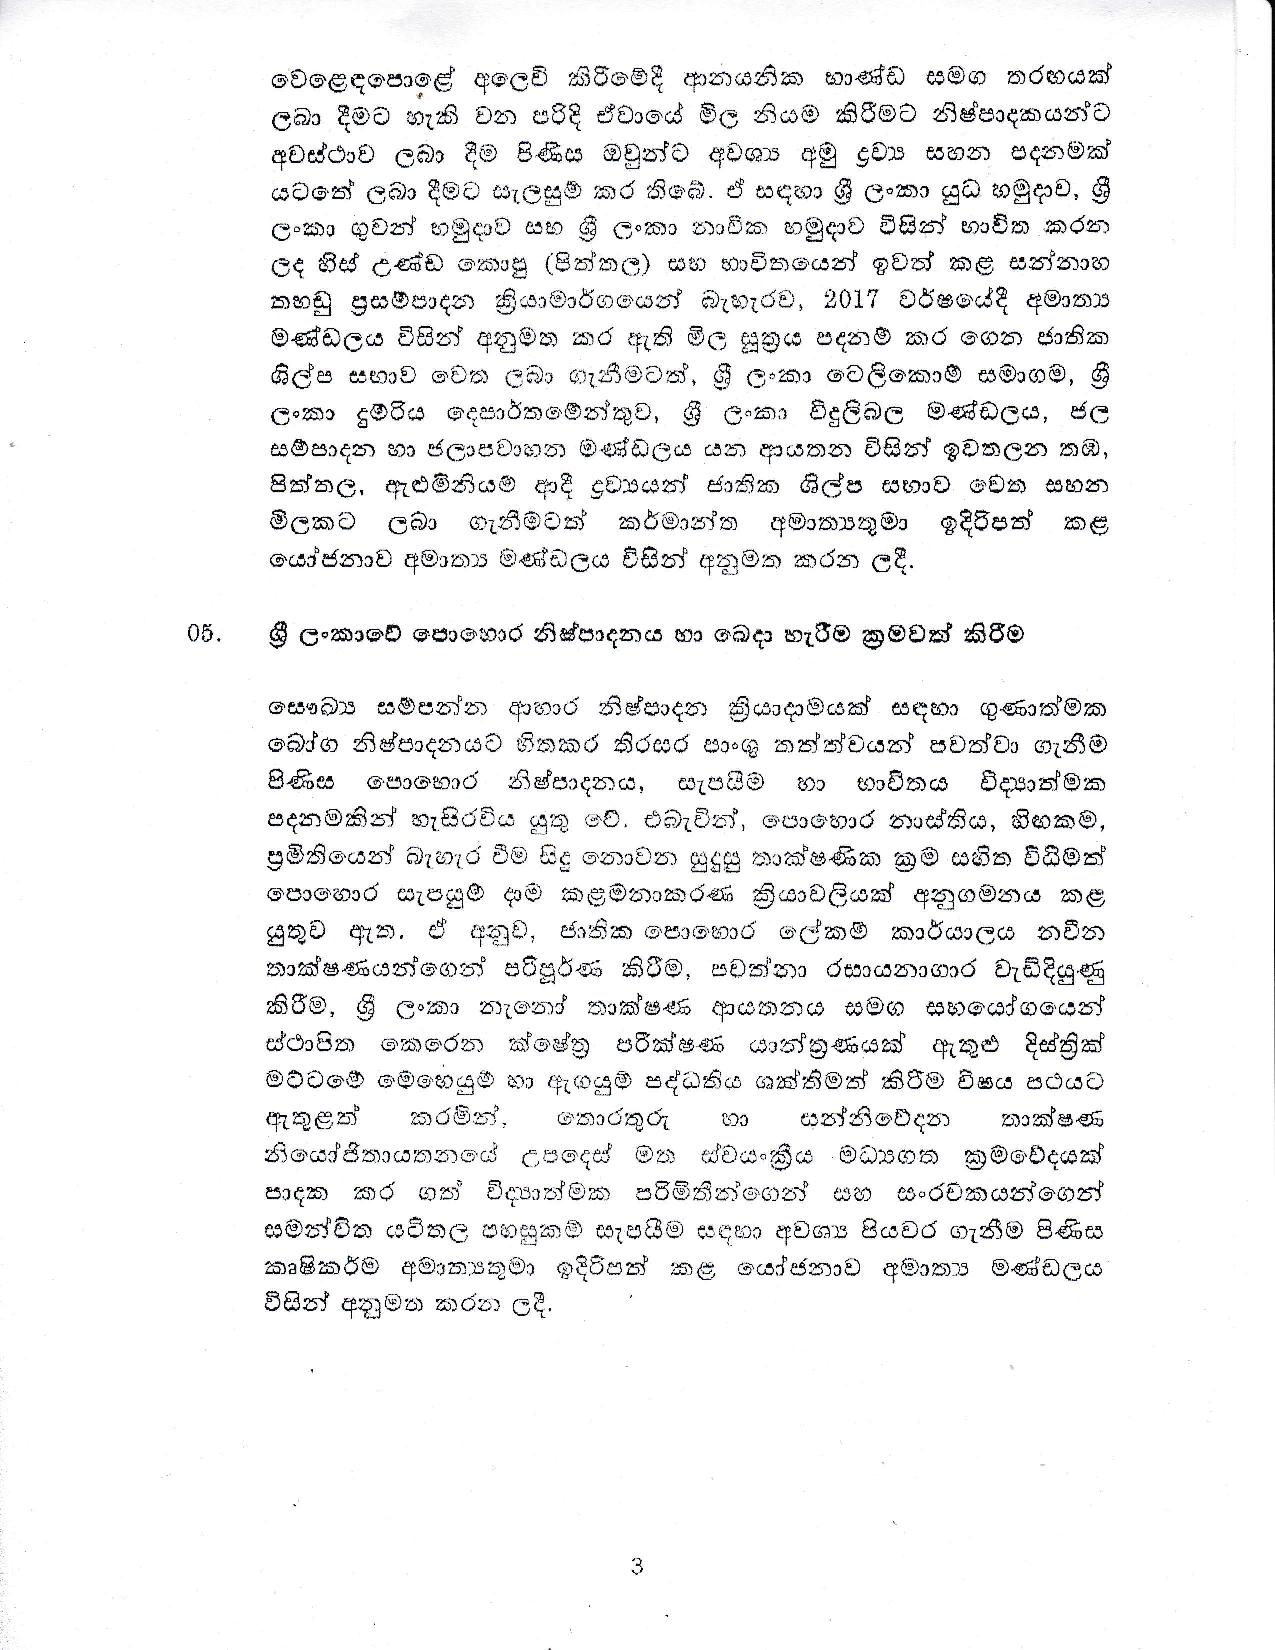 Cabinet Decision on 02.11.2020 page 003